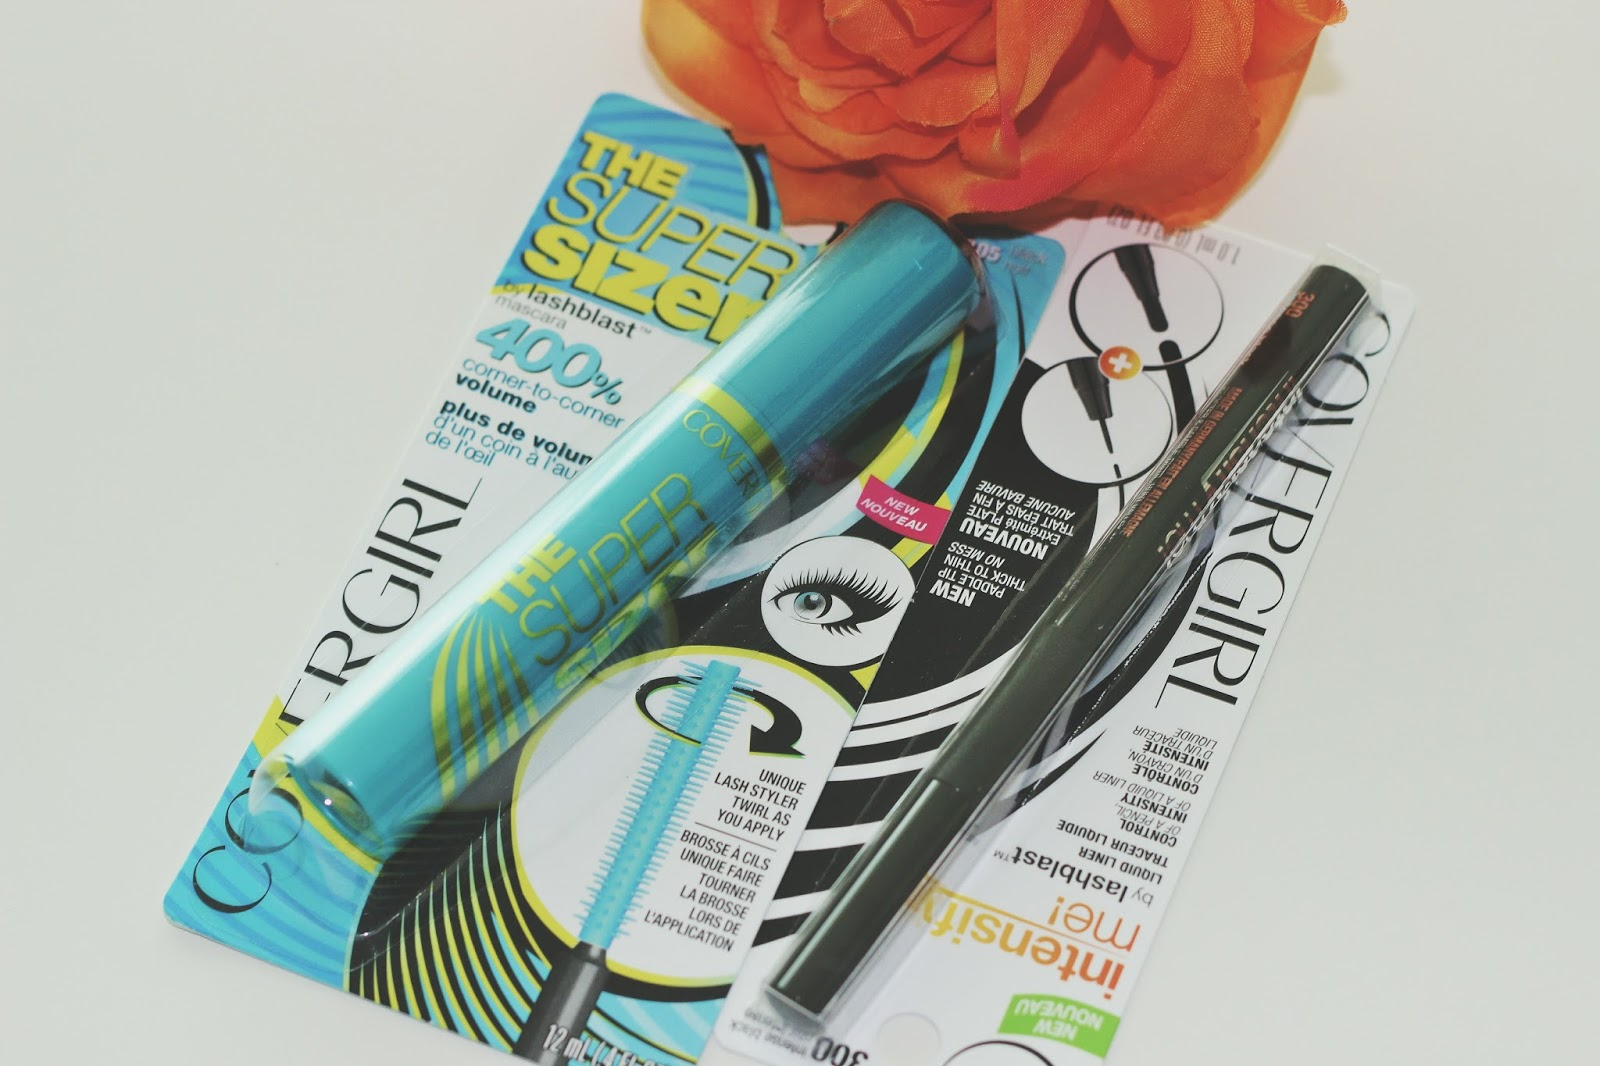 COVERGIRL LAUNCHES SUPER SIZER BLAST® MASCARA AND INTENSIFY ME! LIQUID EYELINER BY LASHBLAST | REVIEW & TIPS ON HOW TO APPLY